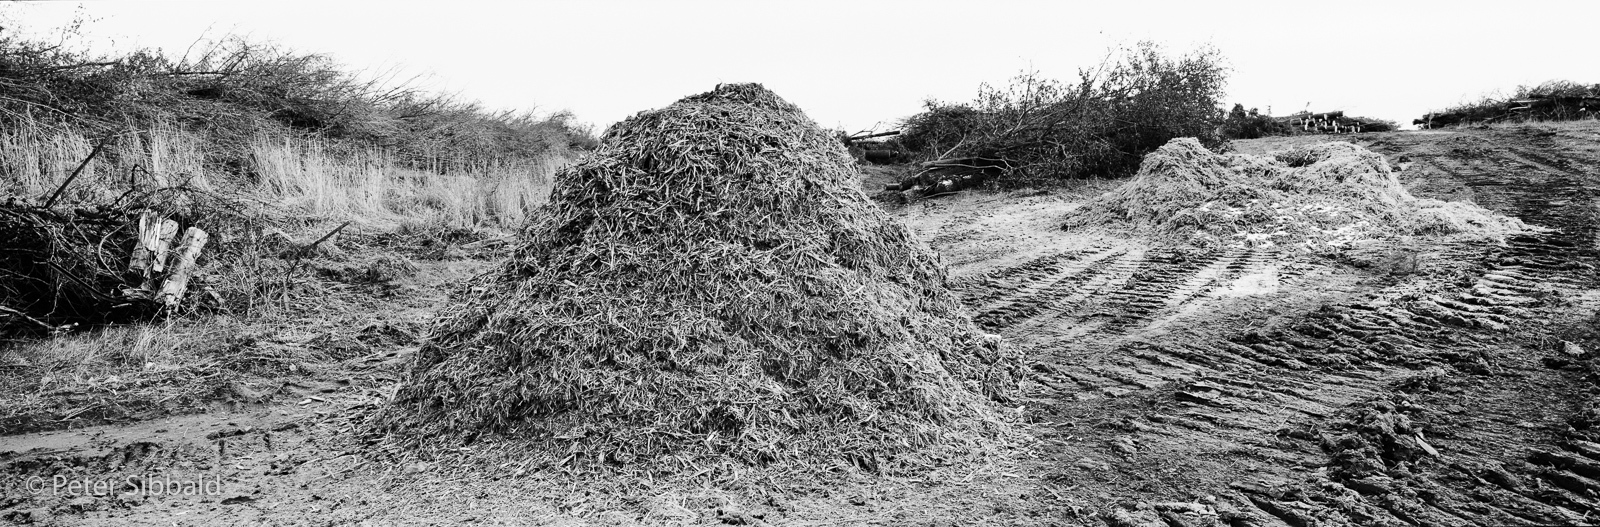 Art and Documentary Photography - Loading 024-circa-2007_spr_039_08_woodchip_pile-copy.jpg